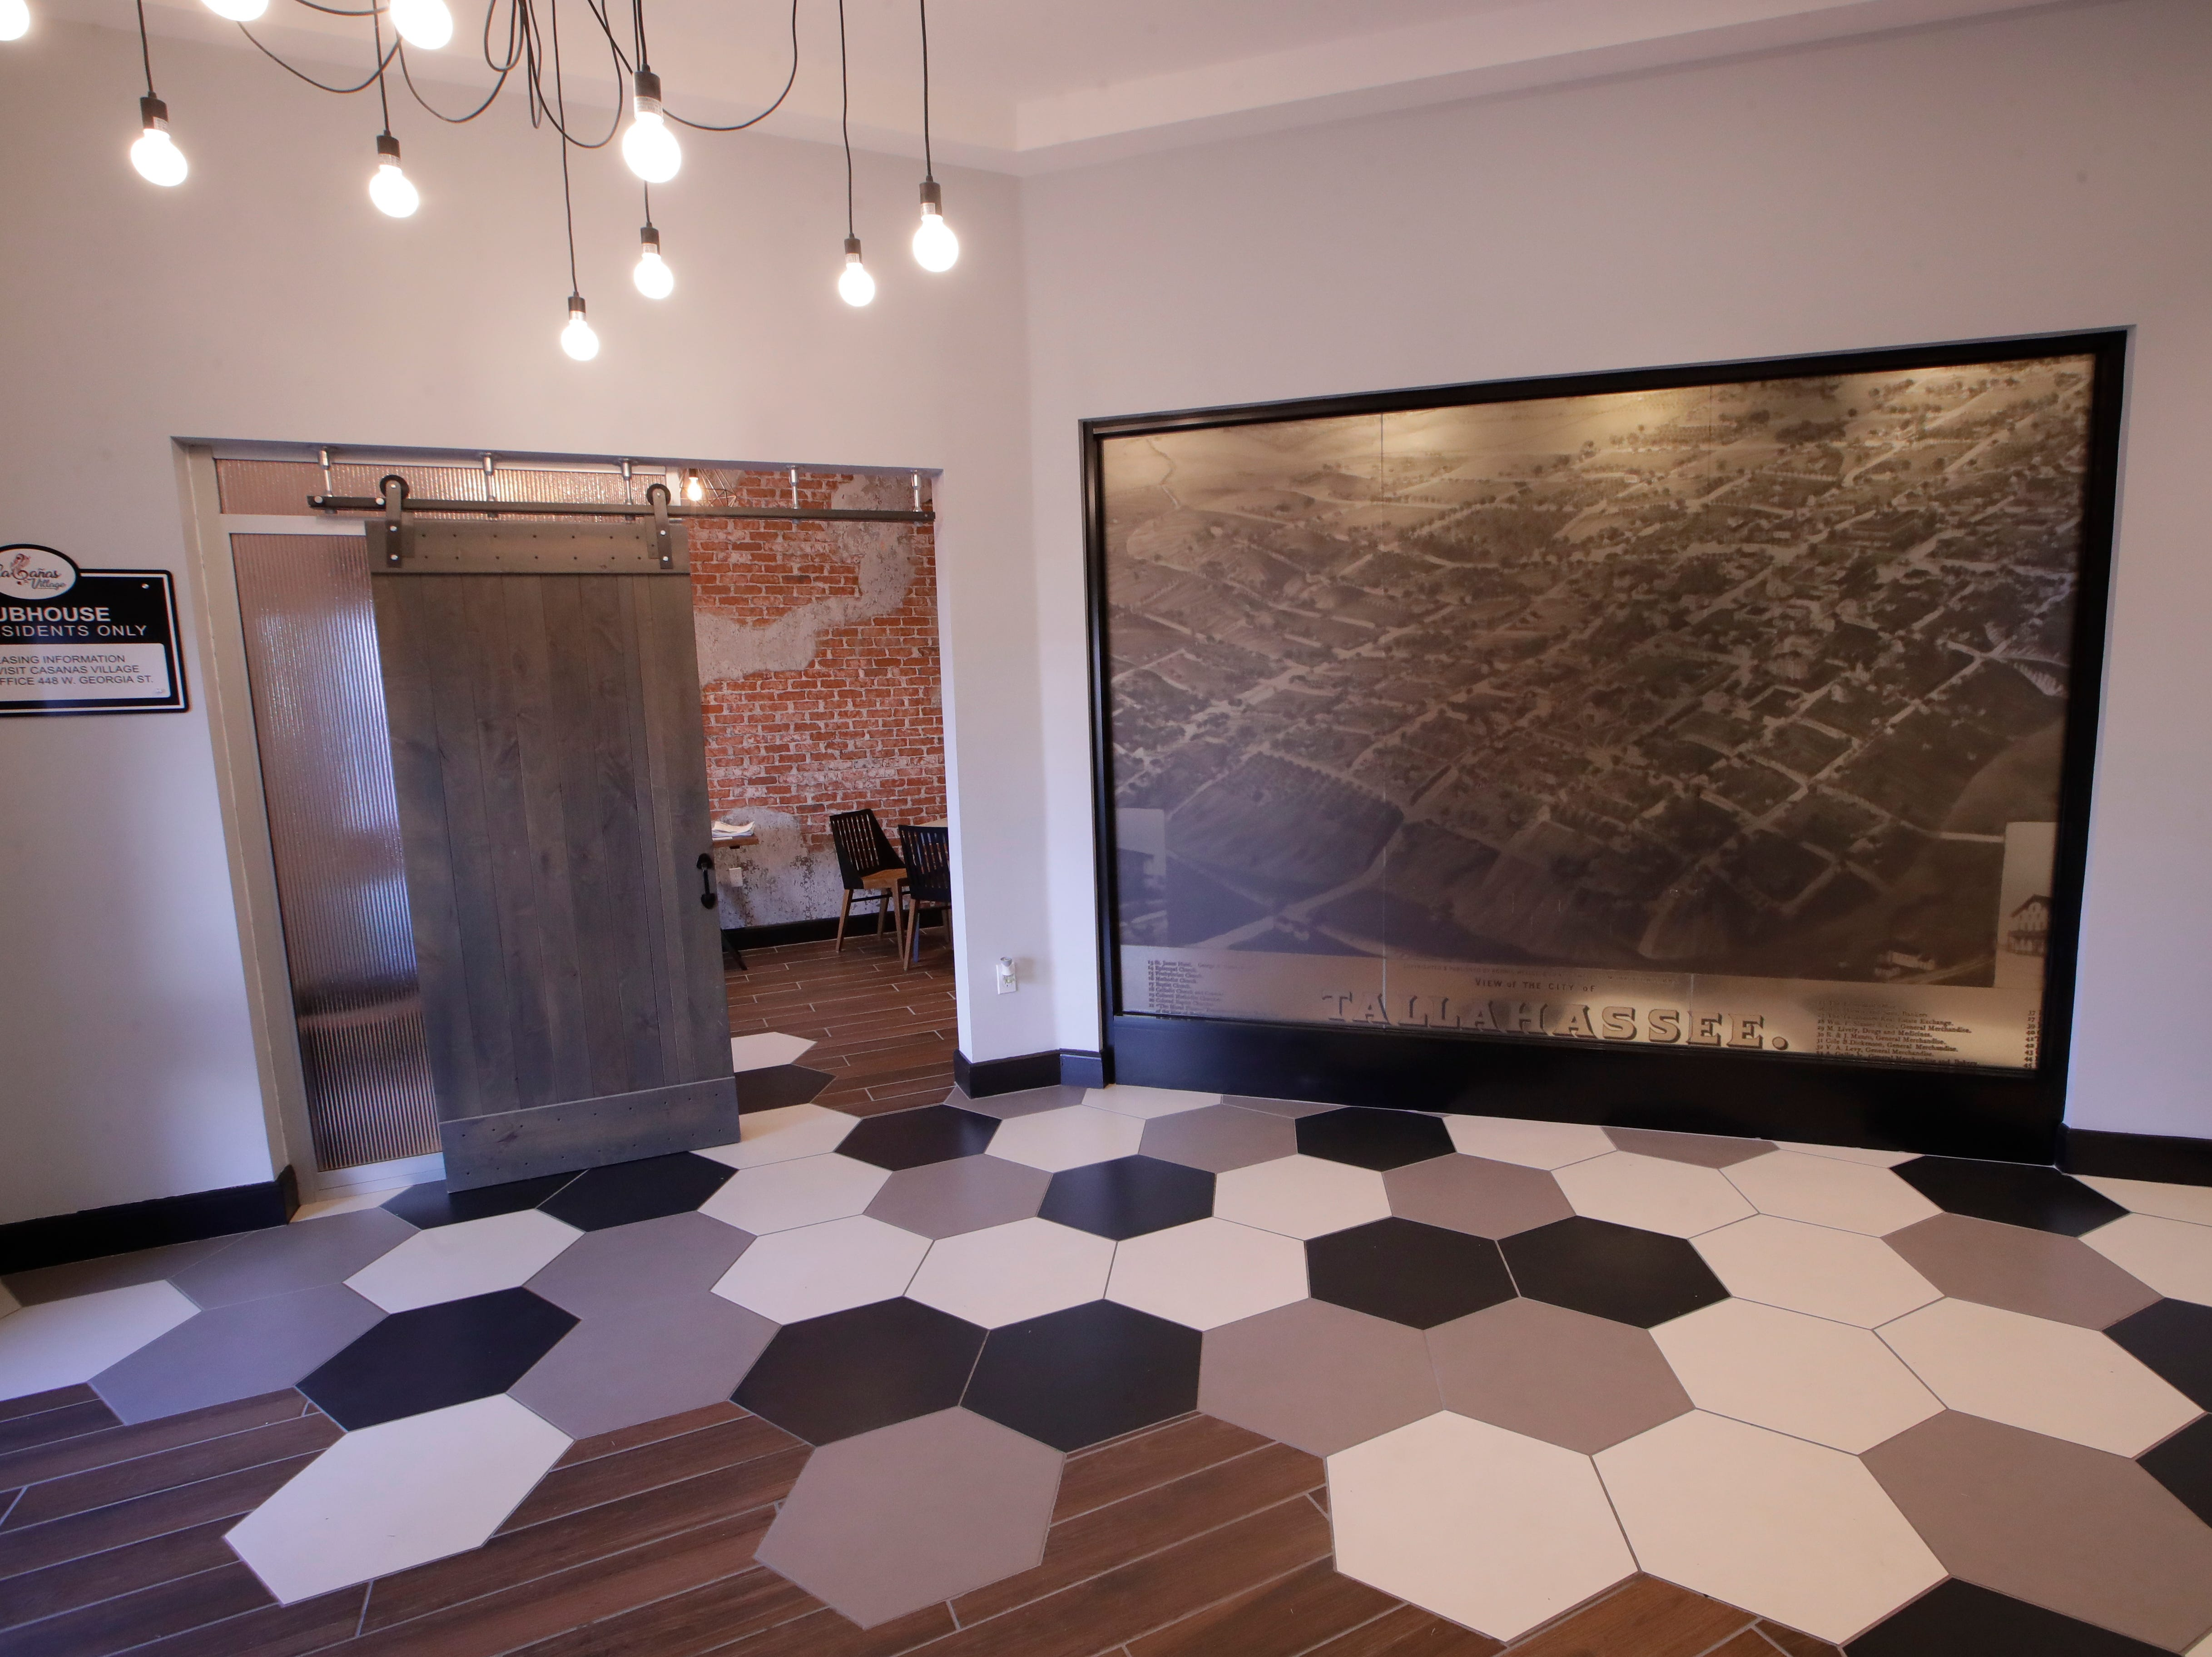 The entrance to Casañas Village Apartments at Frenchtown Square includes a vintage photo of Tallahassee and tile floors leading to a community room.